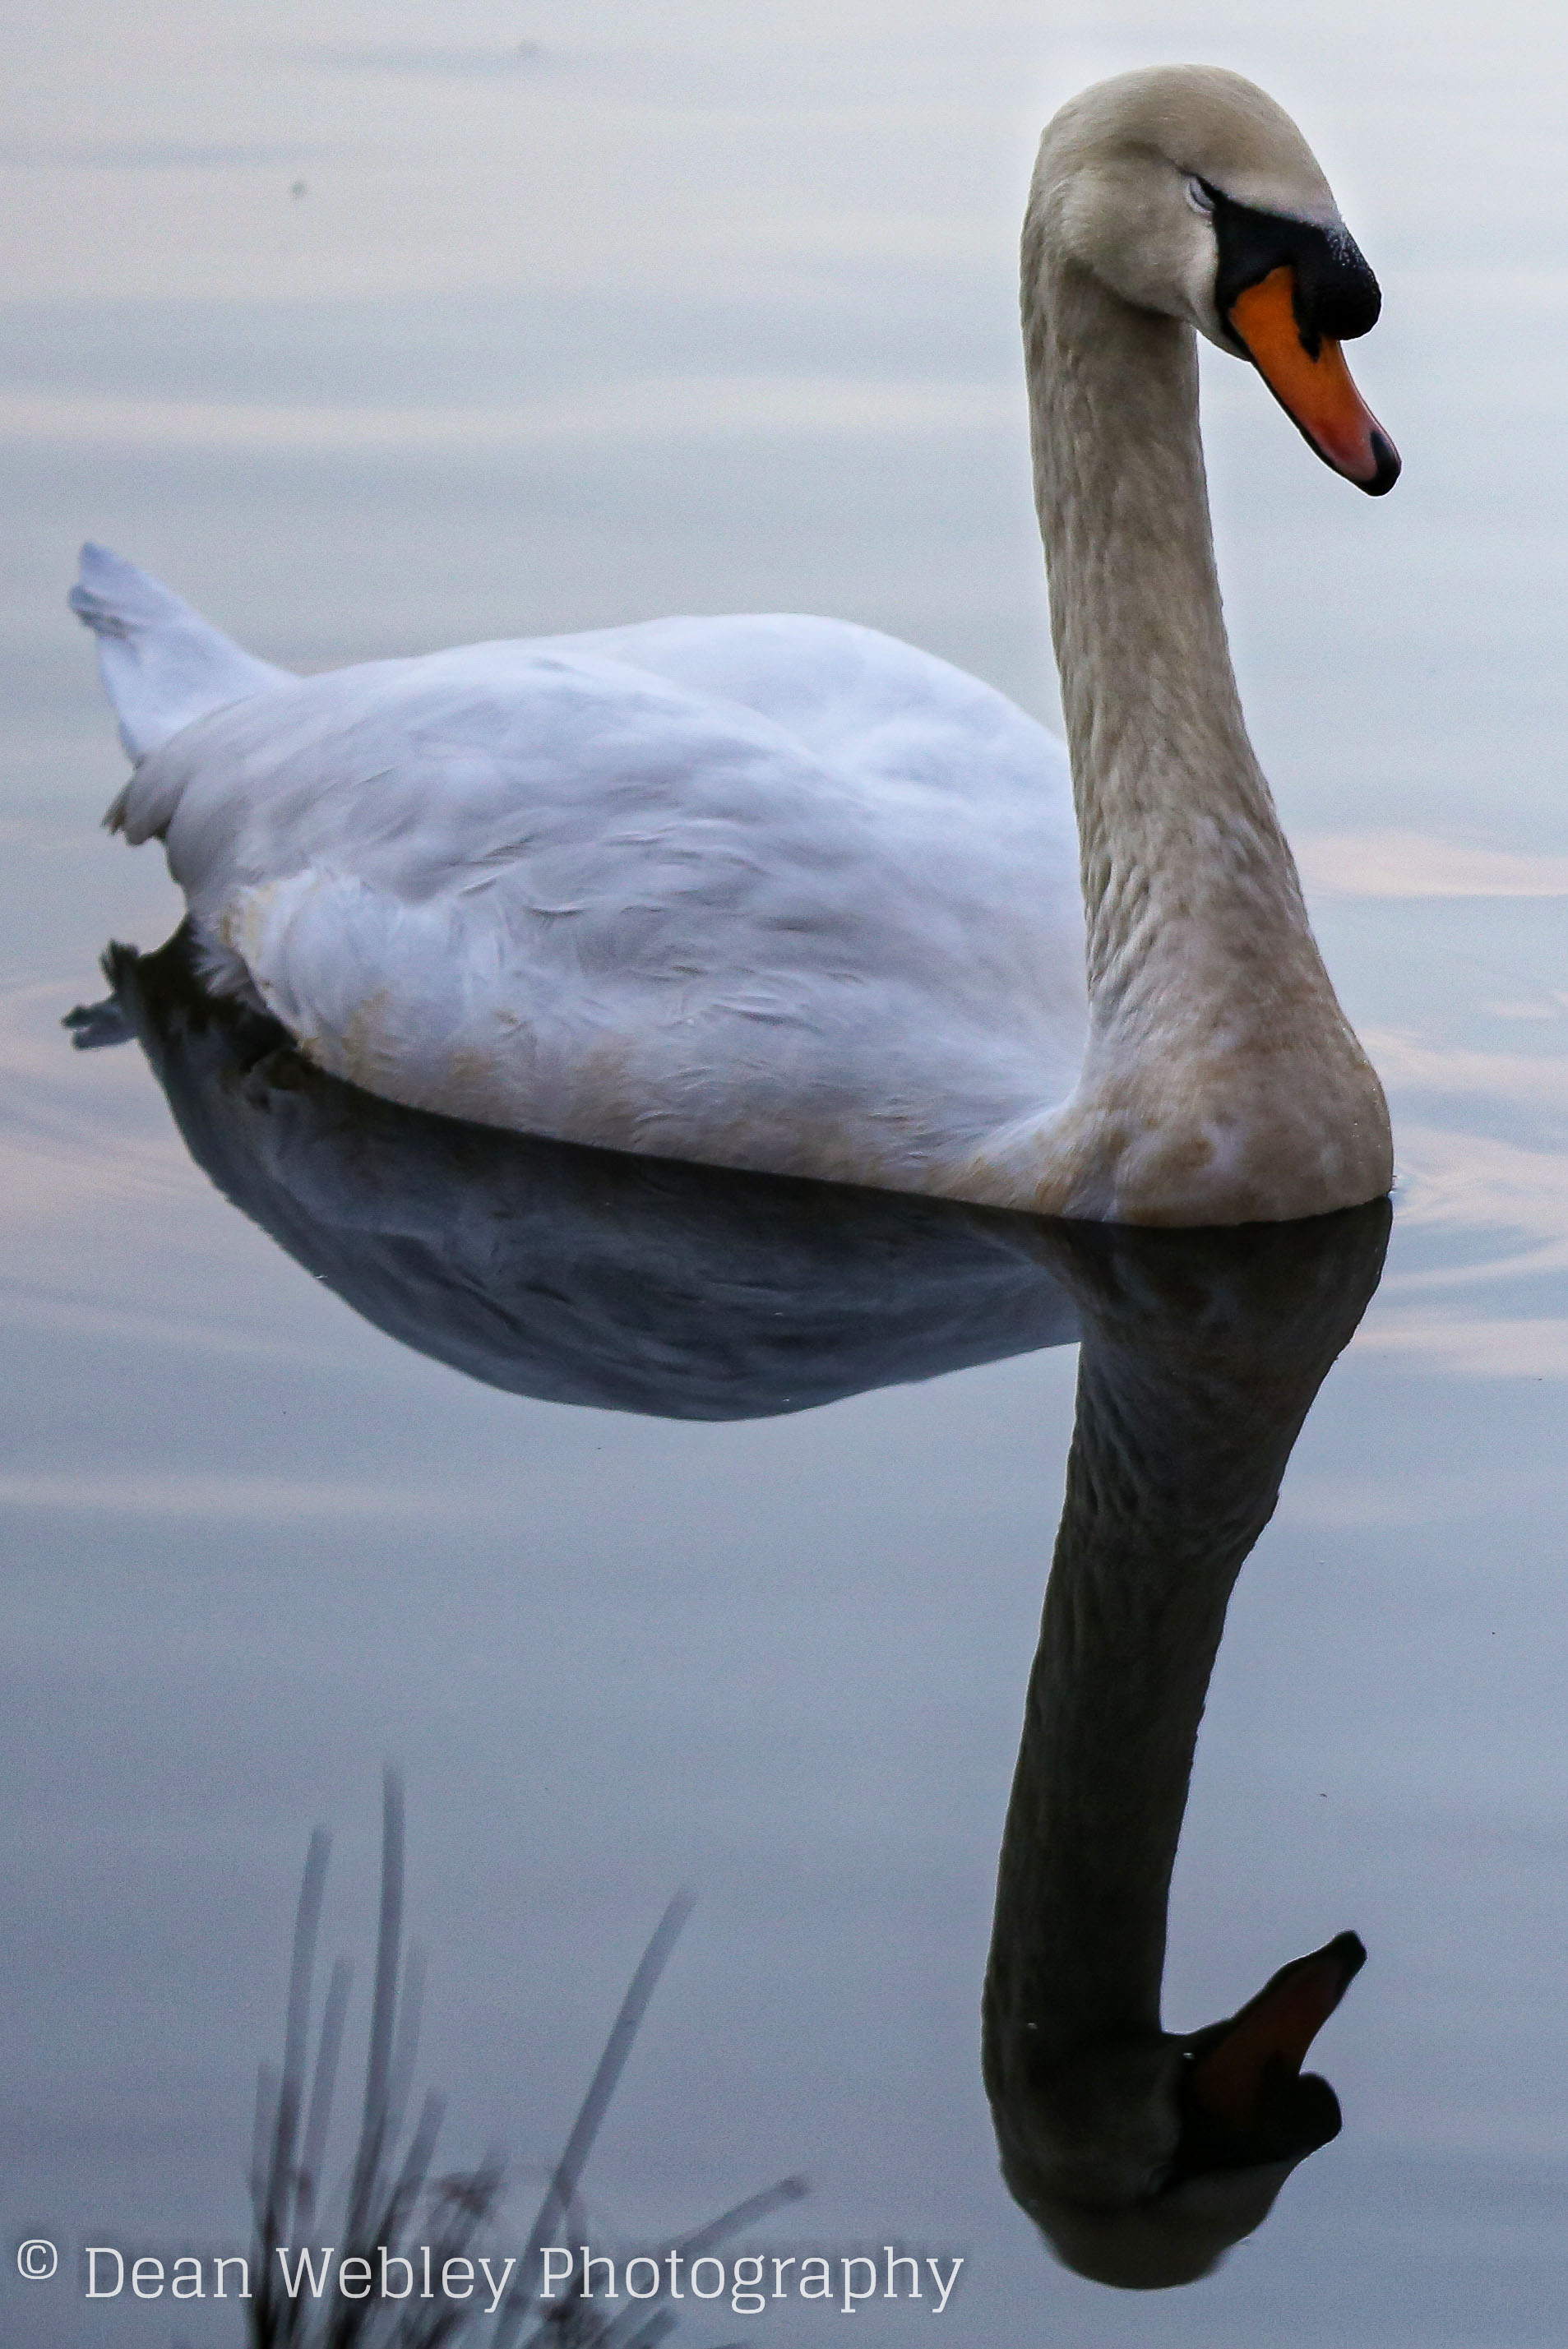 Mute Swan With Reflection, Taken at Cannop Ponds in the Forest of Dean